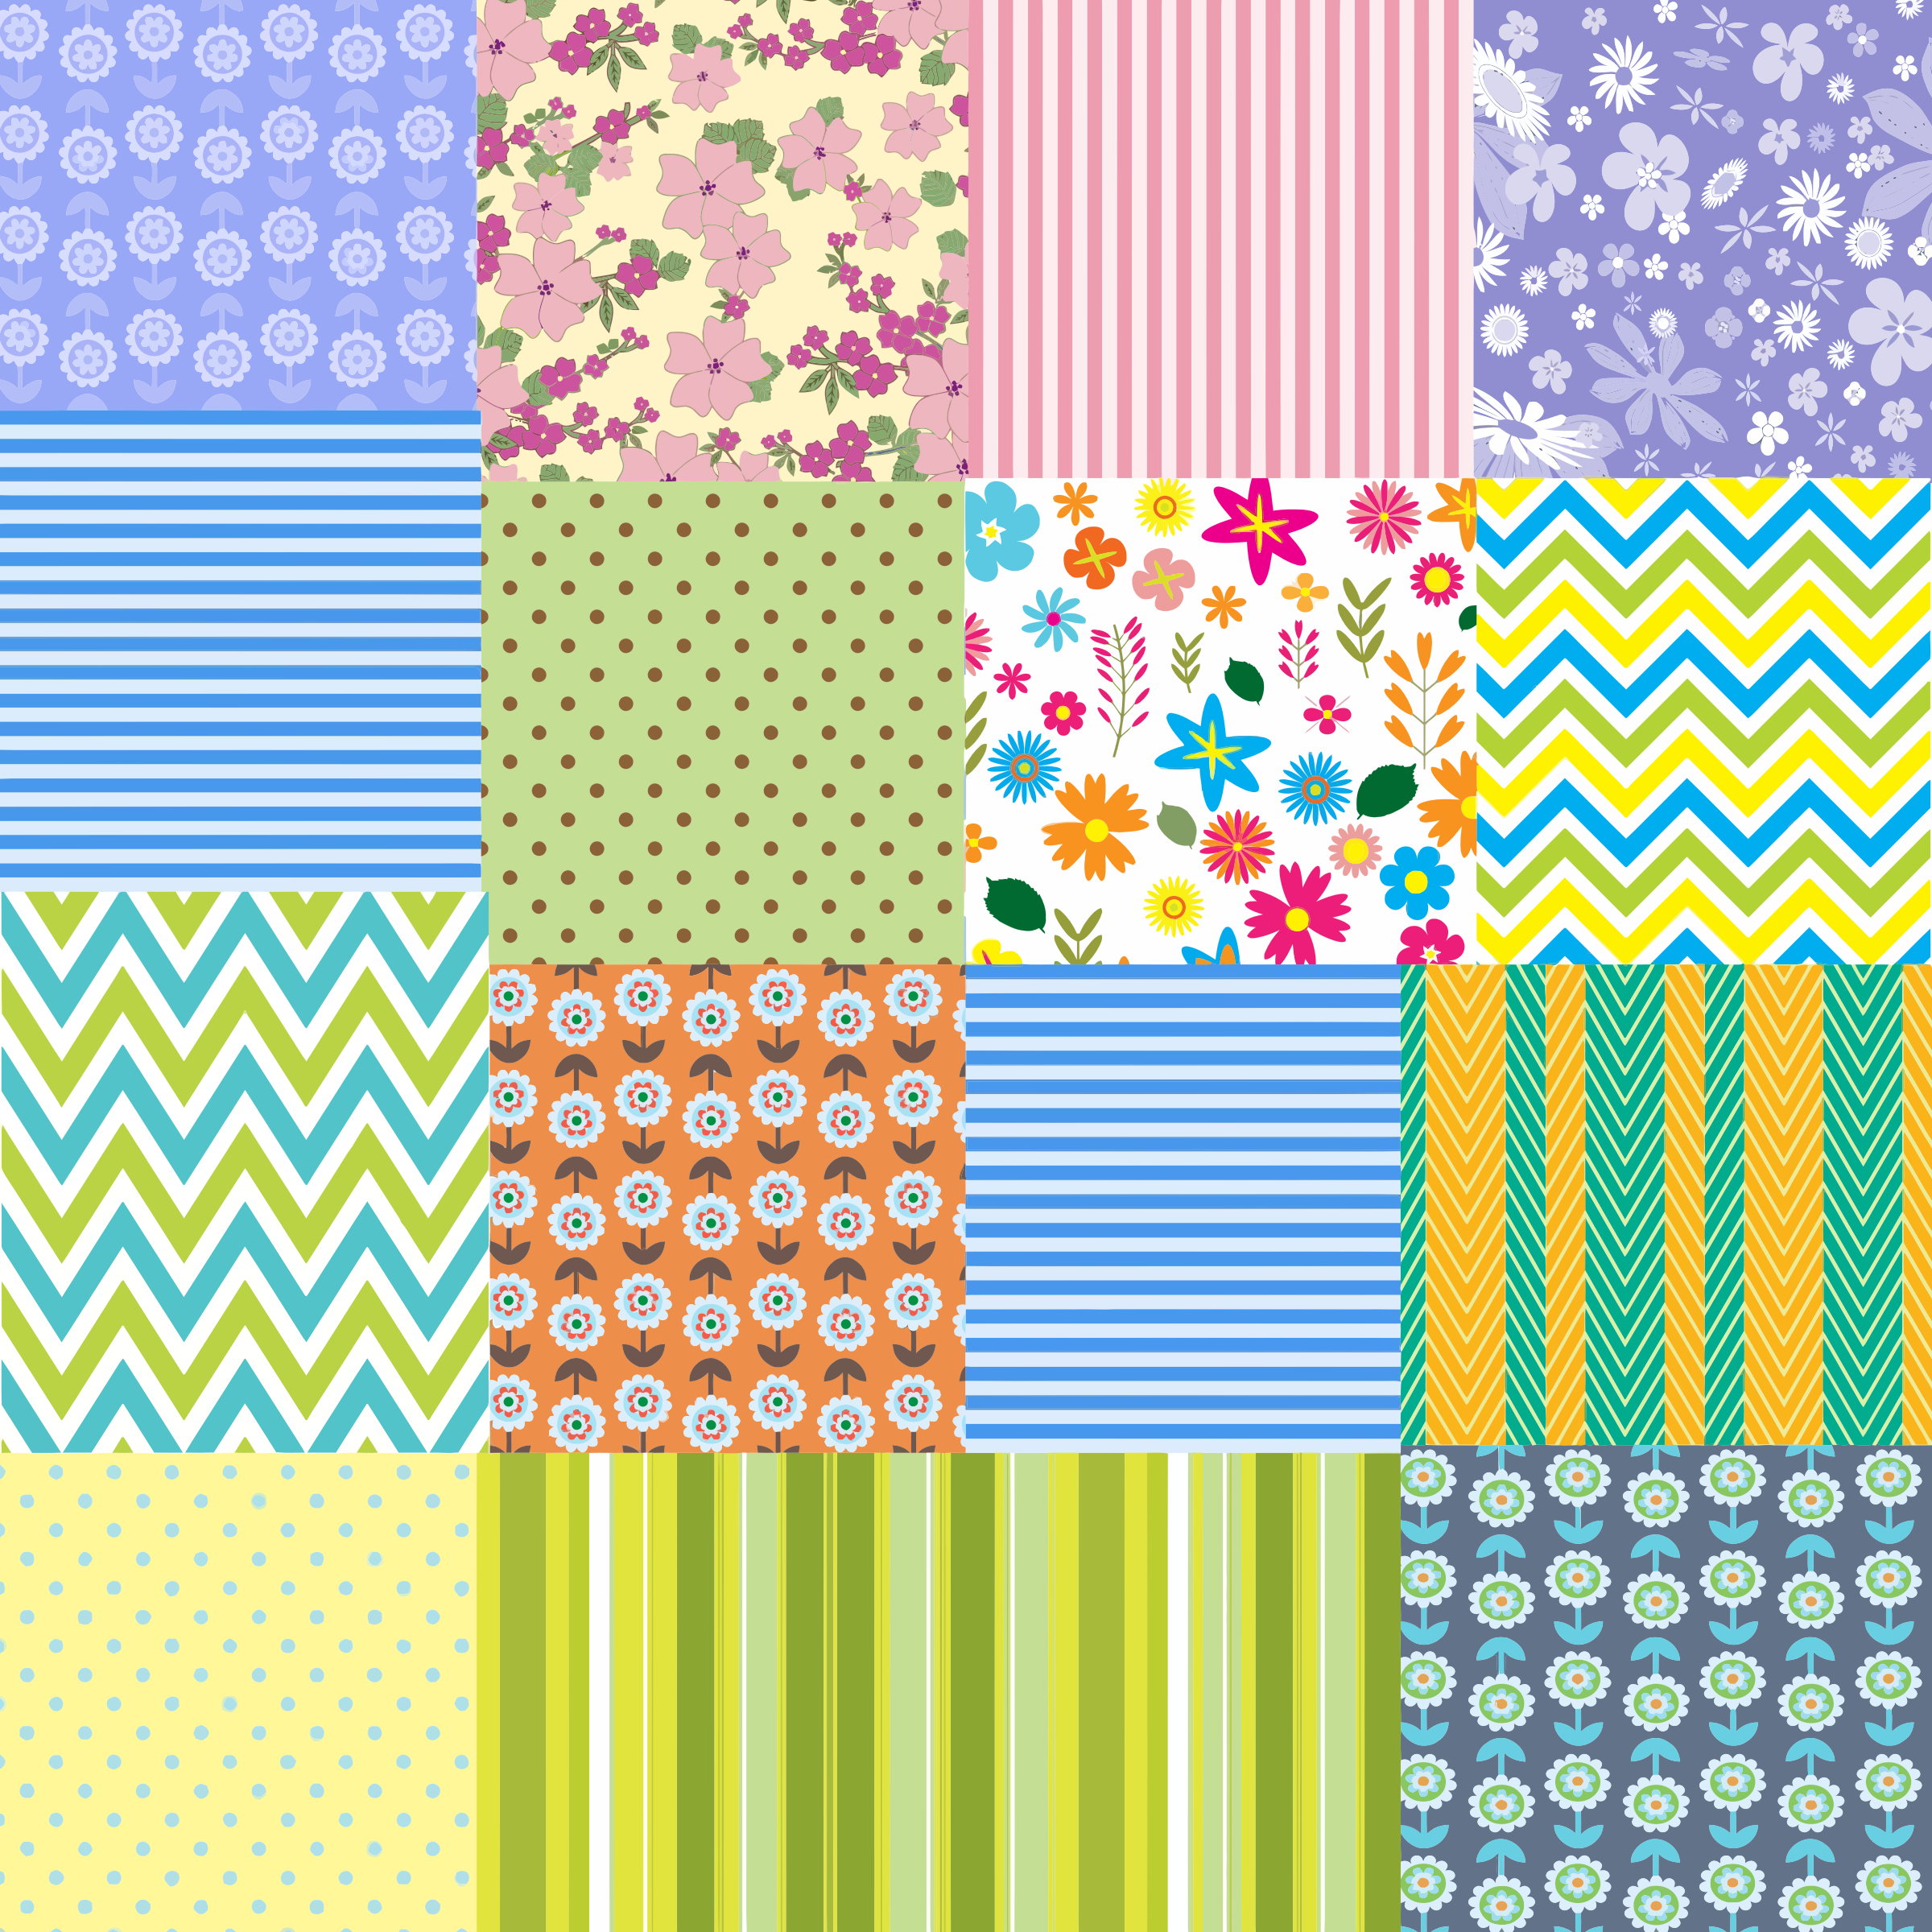 Quilt patterns clipart banner freeuse download Quilt patterns clipart - ClipartFest banner freeuse download